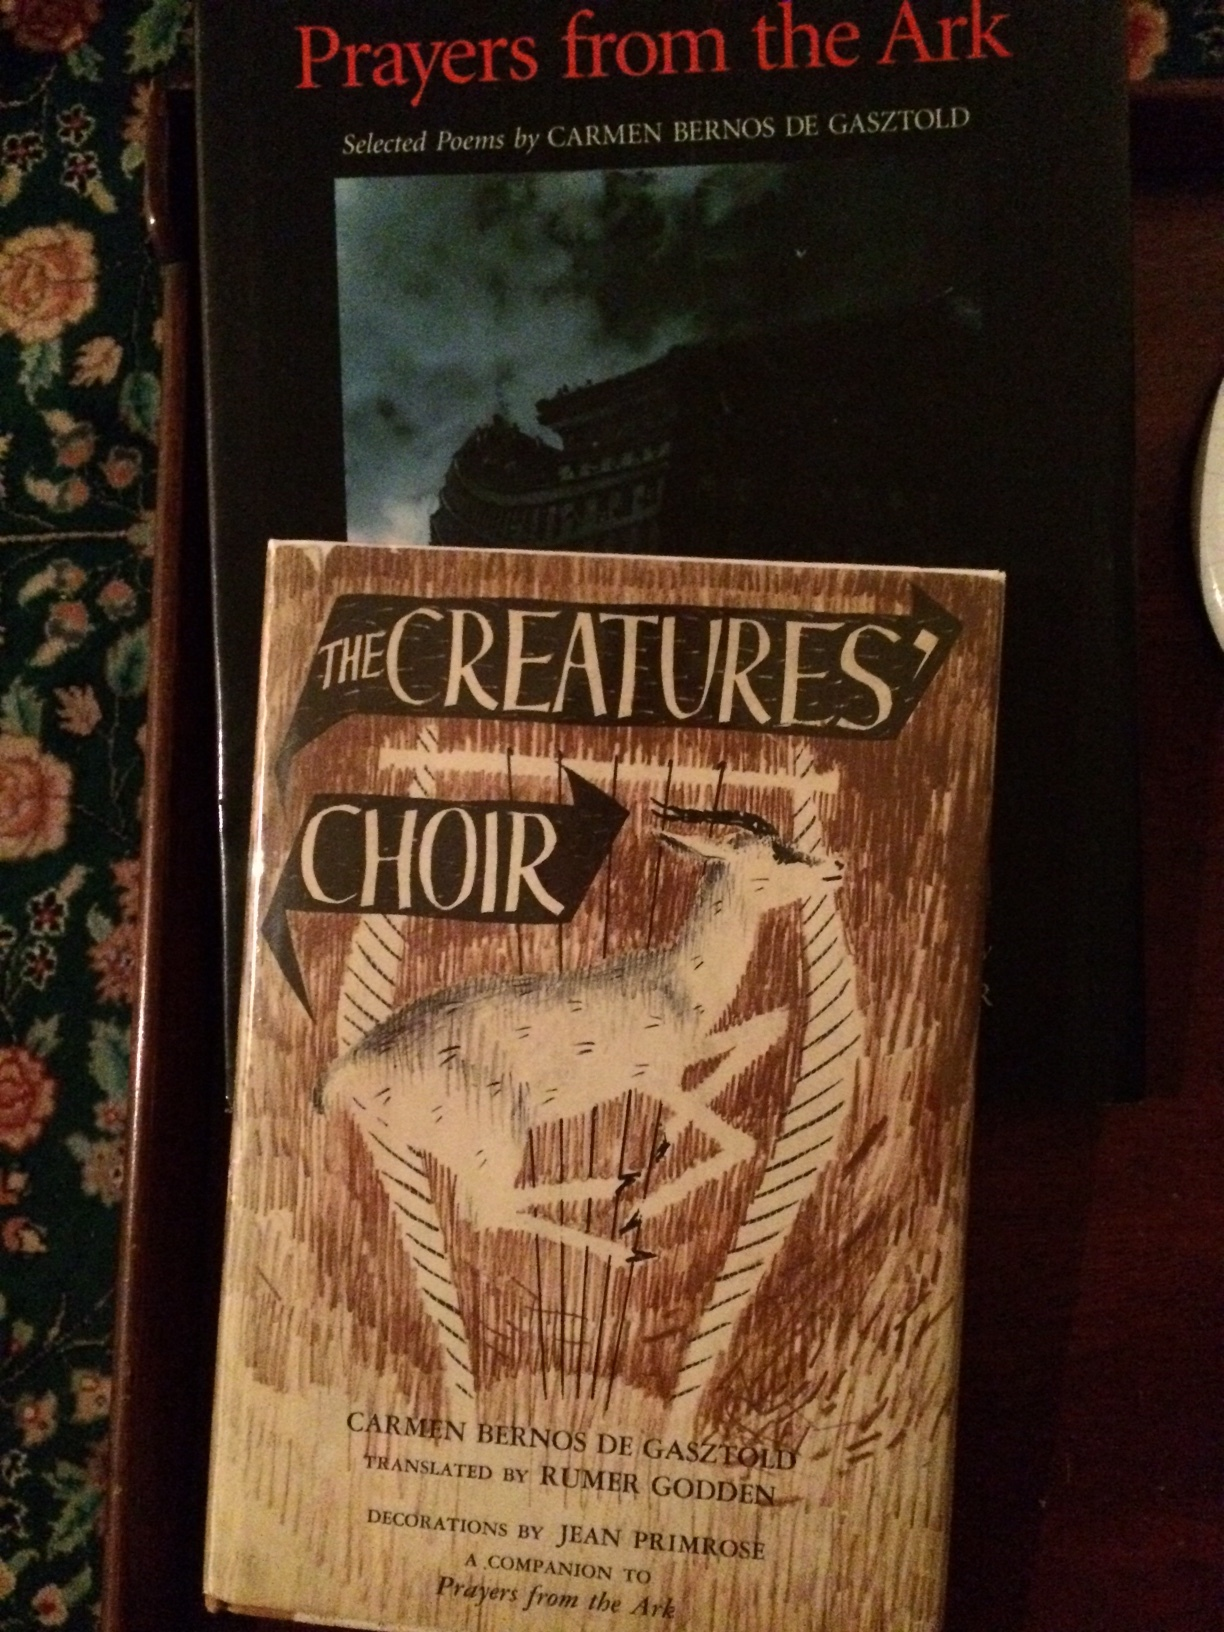 Prayers From the Ark and The Creatures' Choir